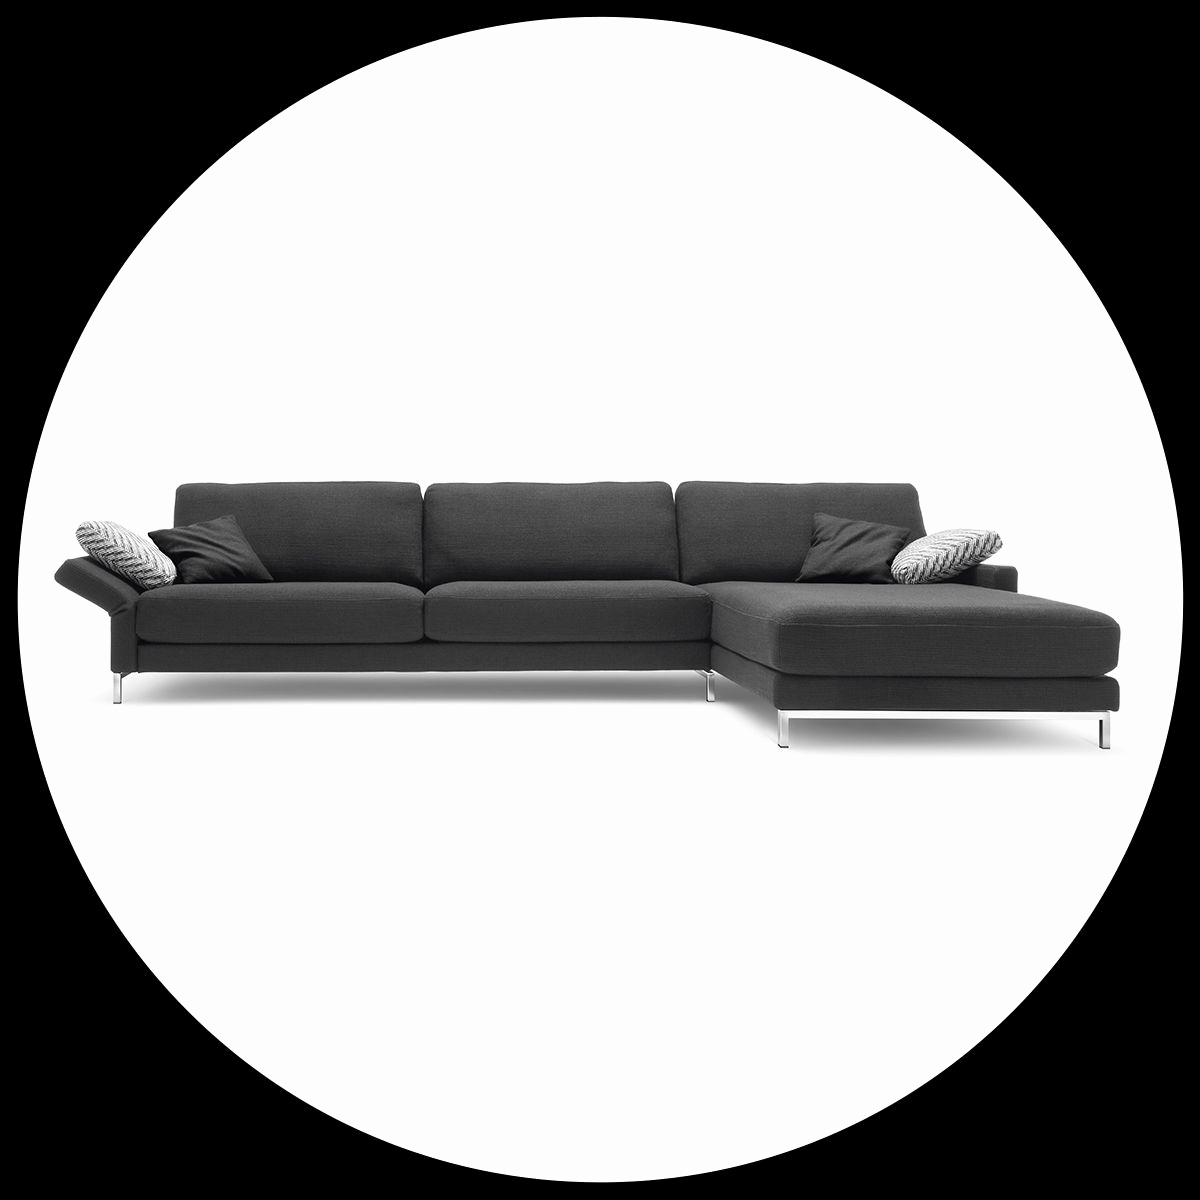 Rolf Benz Freistil Schön the Ego Principle the Rolf Benz Ego sofa In Black